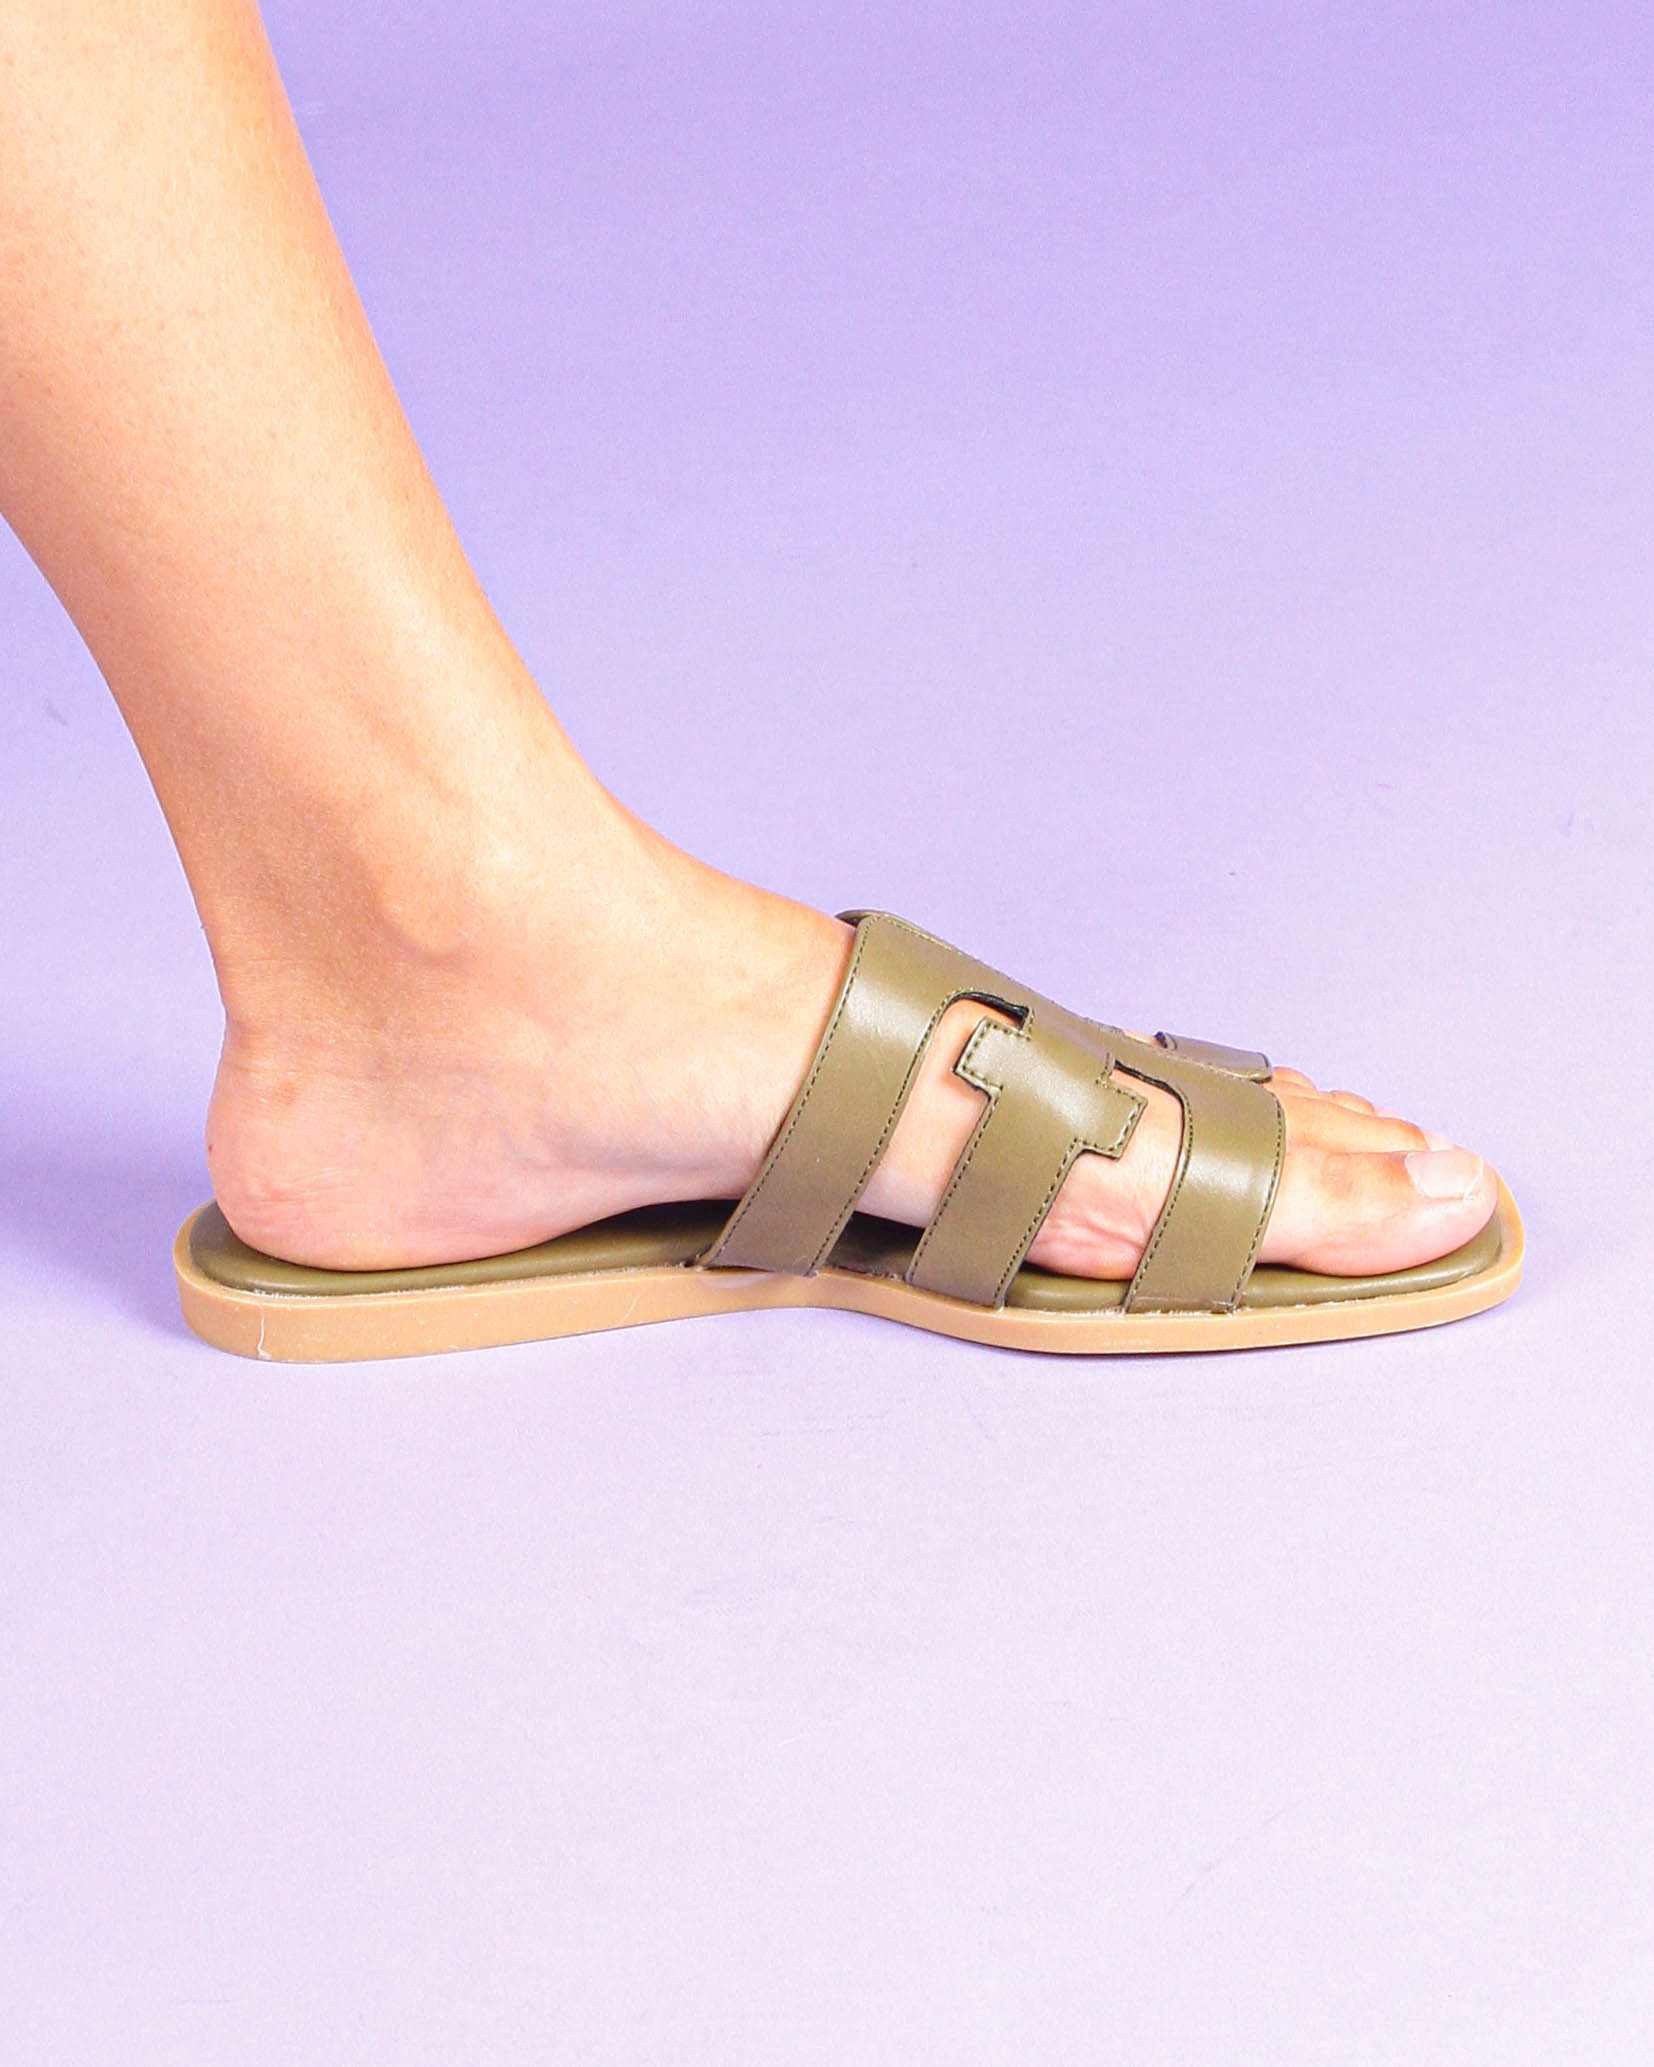 T-Bar Sandals in Olive